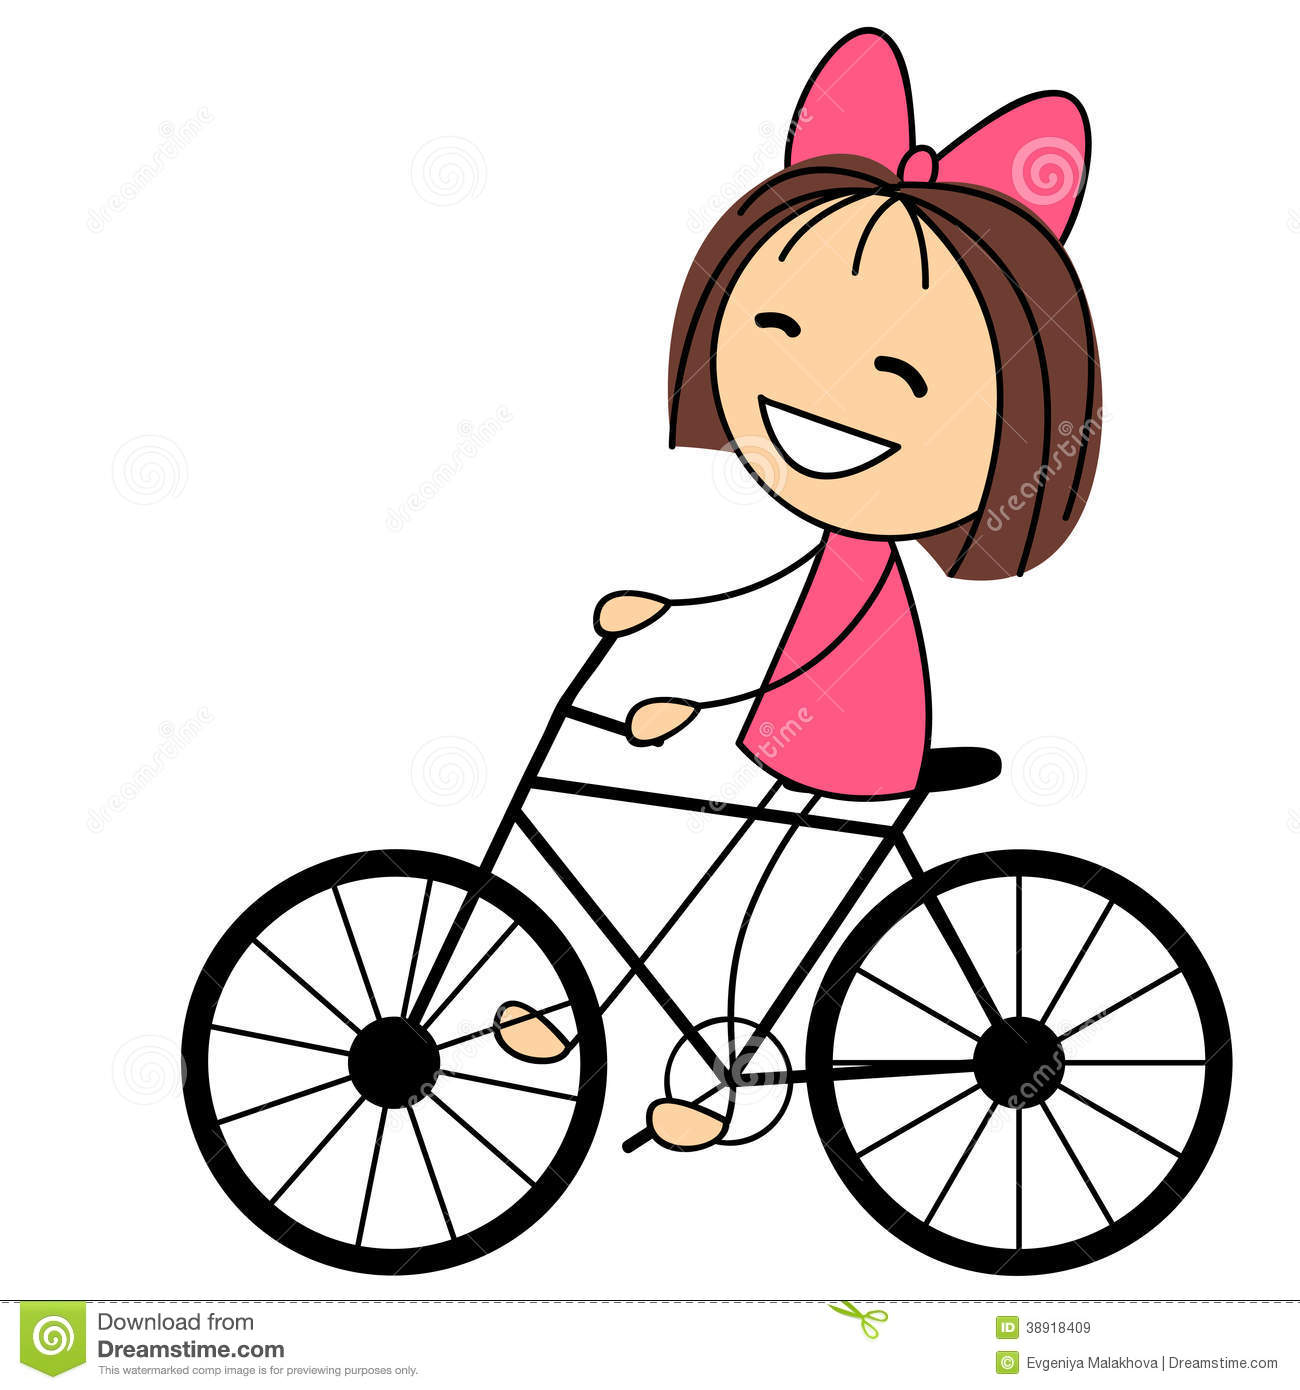 Bike clipart bycicle. Ride cliparts free download